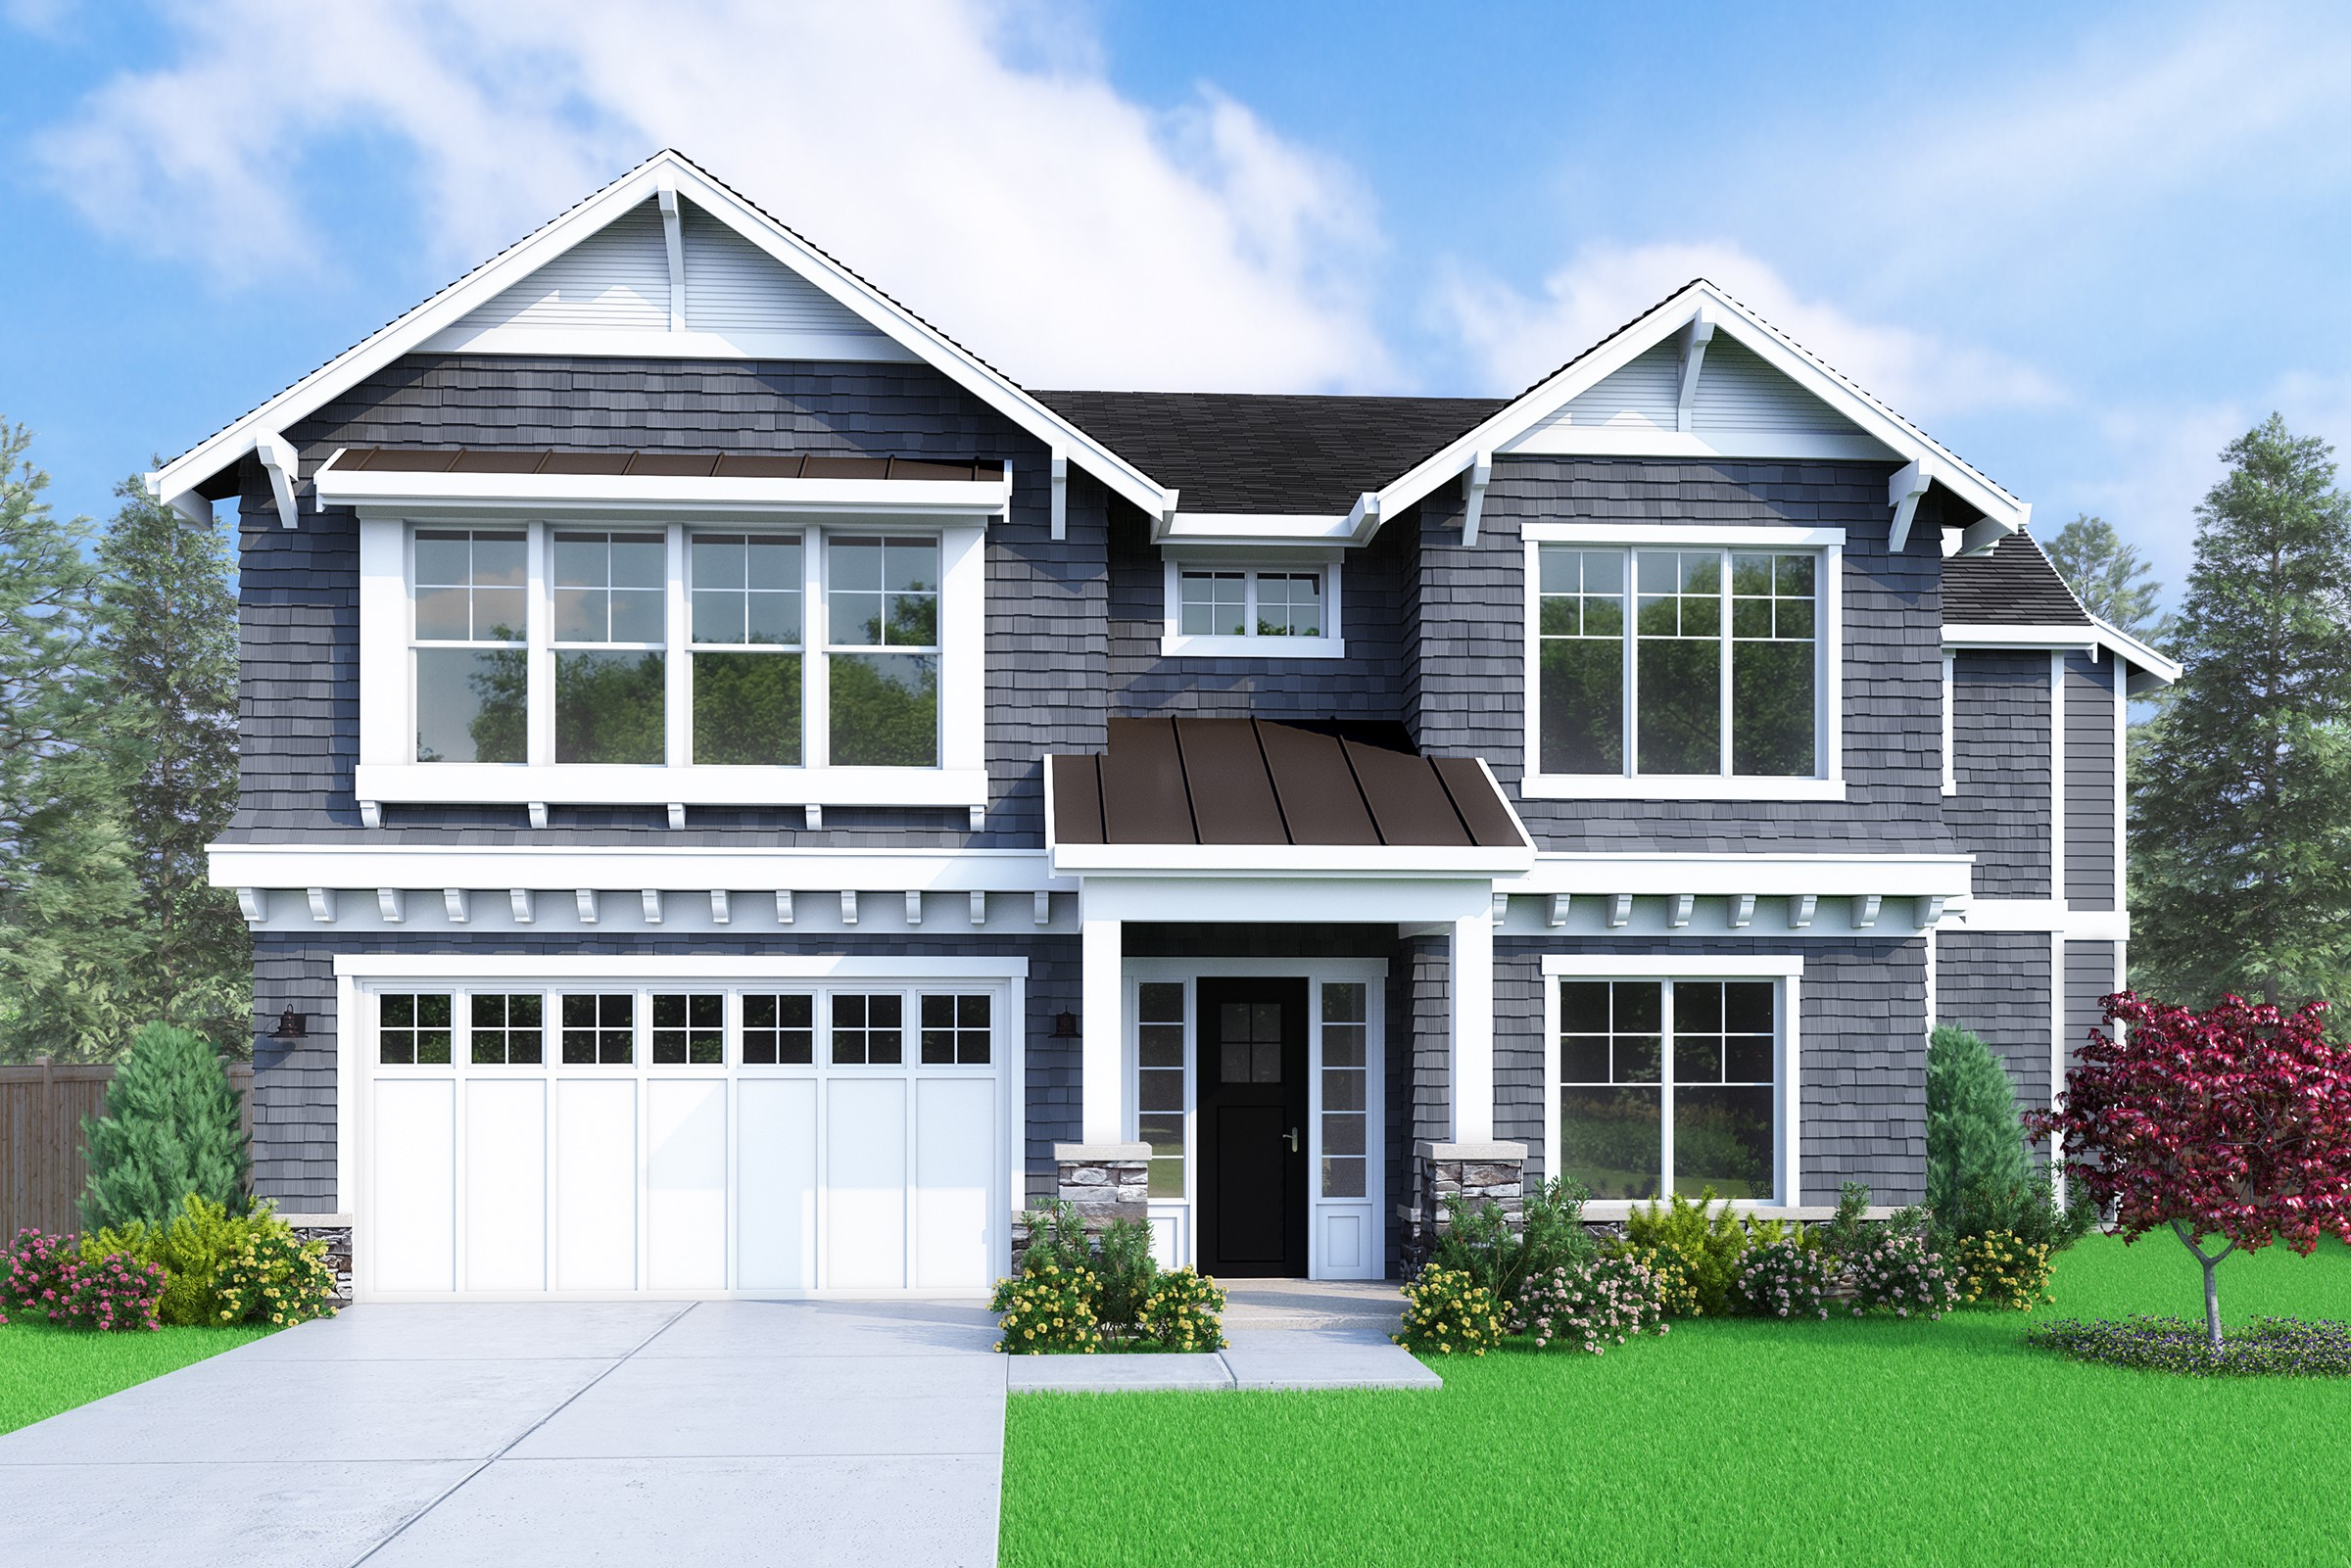 View our new luxury home construction on 16266 NE 1st St, in Bellevue, WA from MN Custom Homes